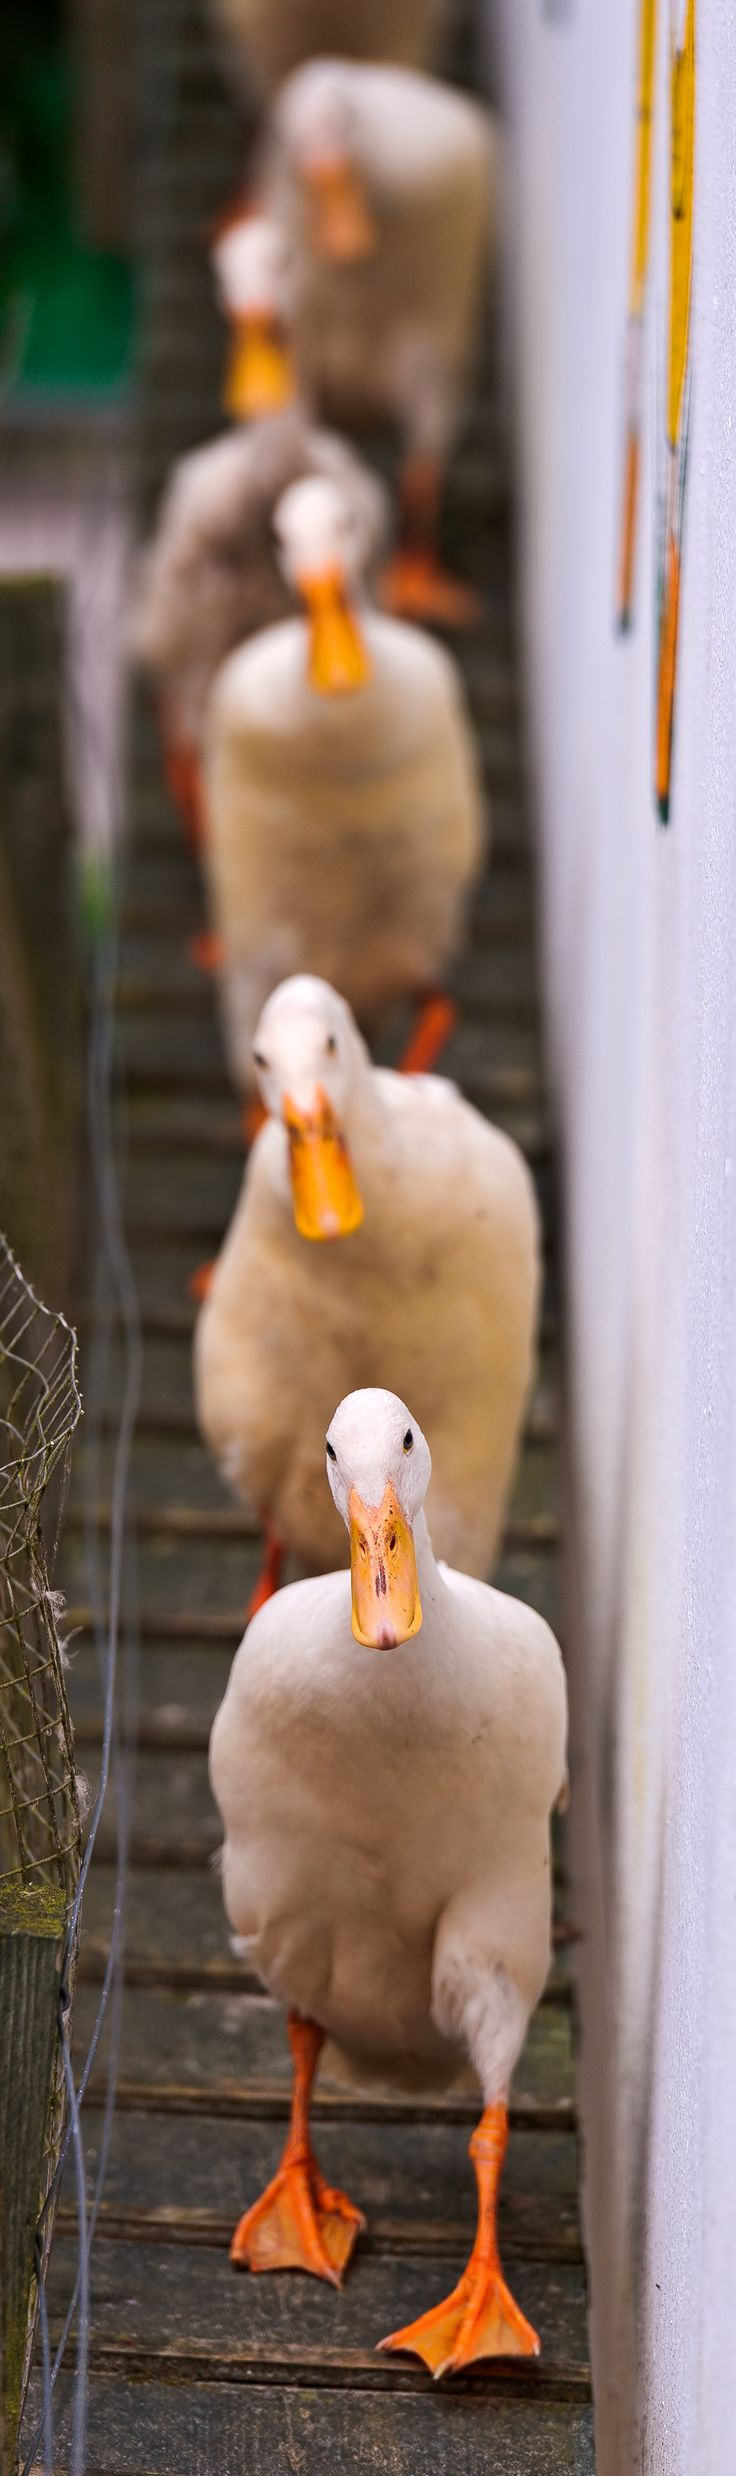 Ducks - This reminds me of the children's book Ping.: Critter, Farms, Creatures, Ducks, Birds, Photo, Row, Animal, Feathers Friends